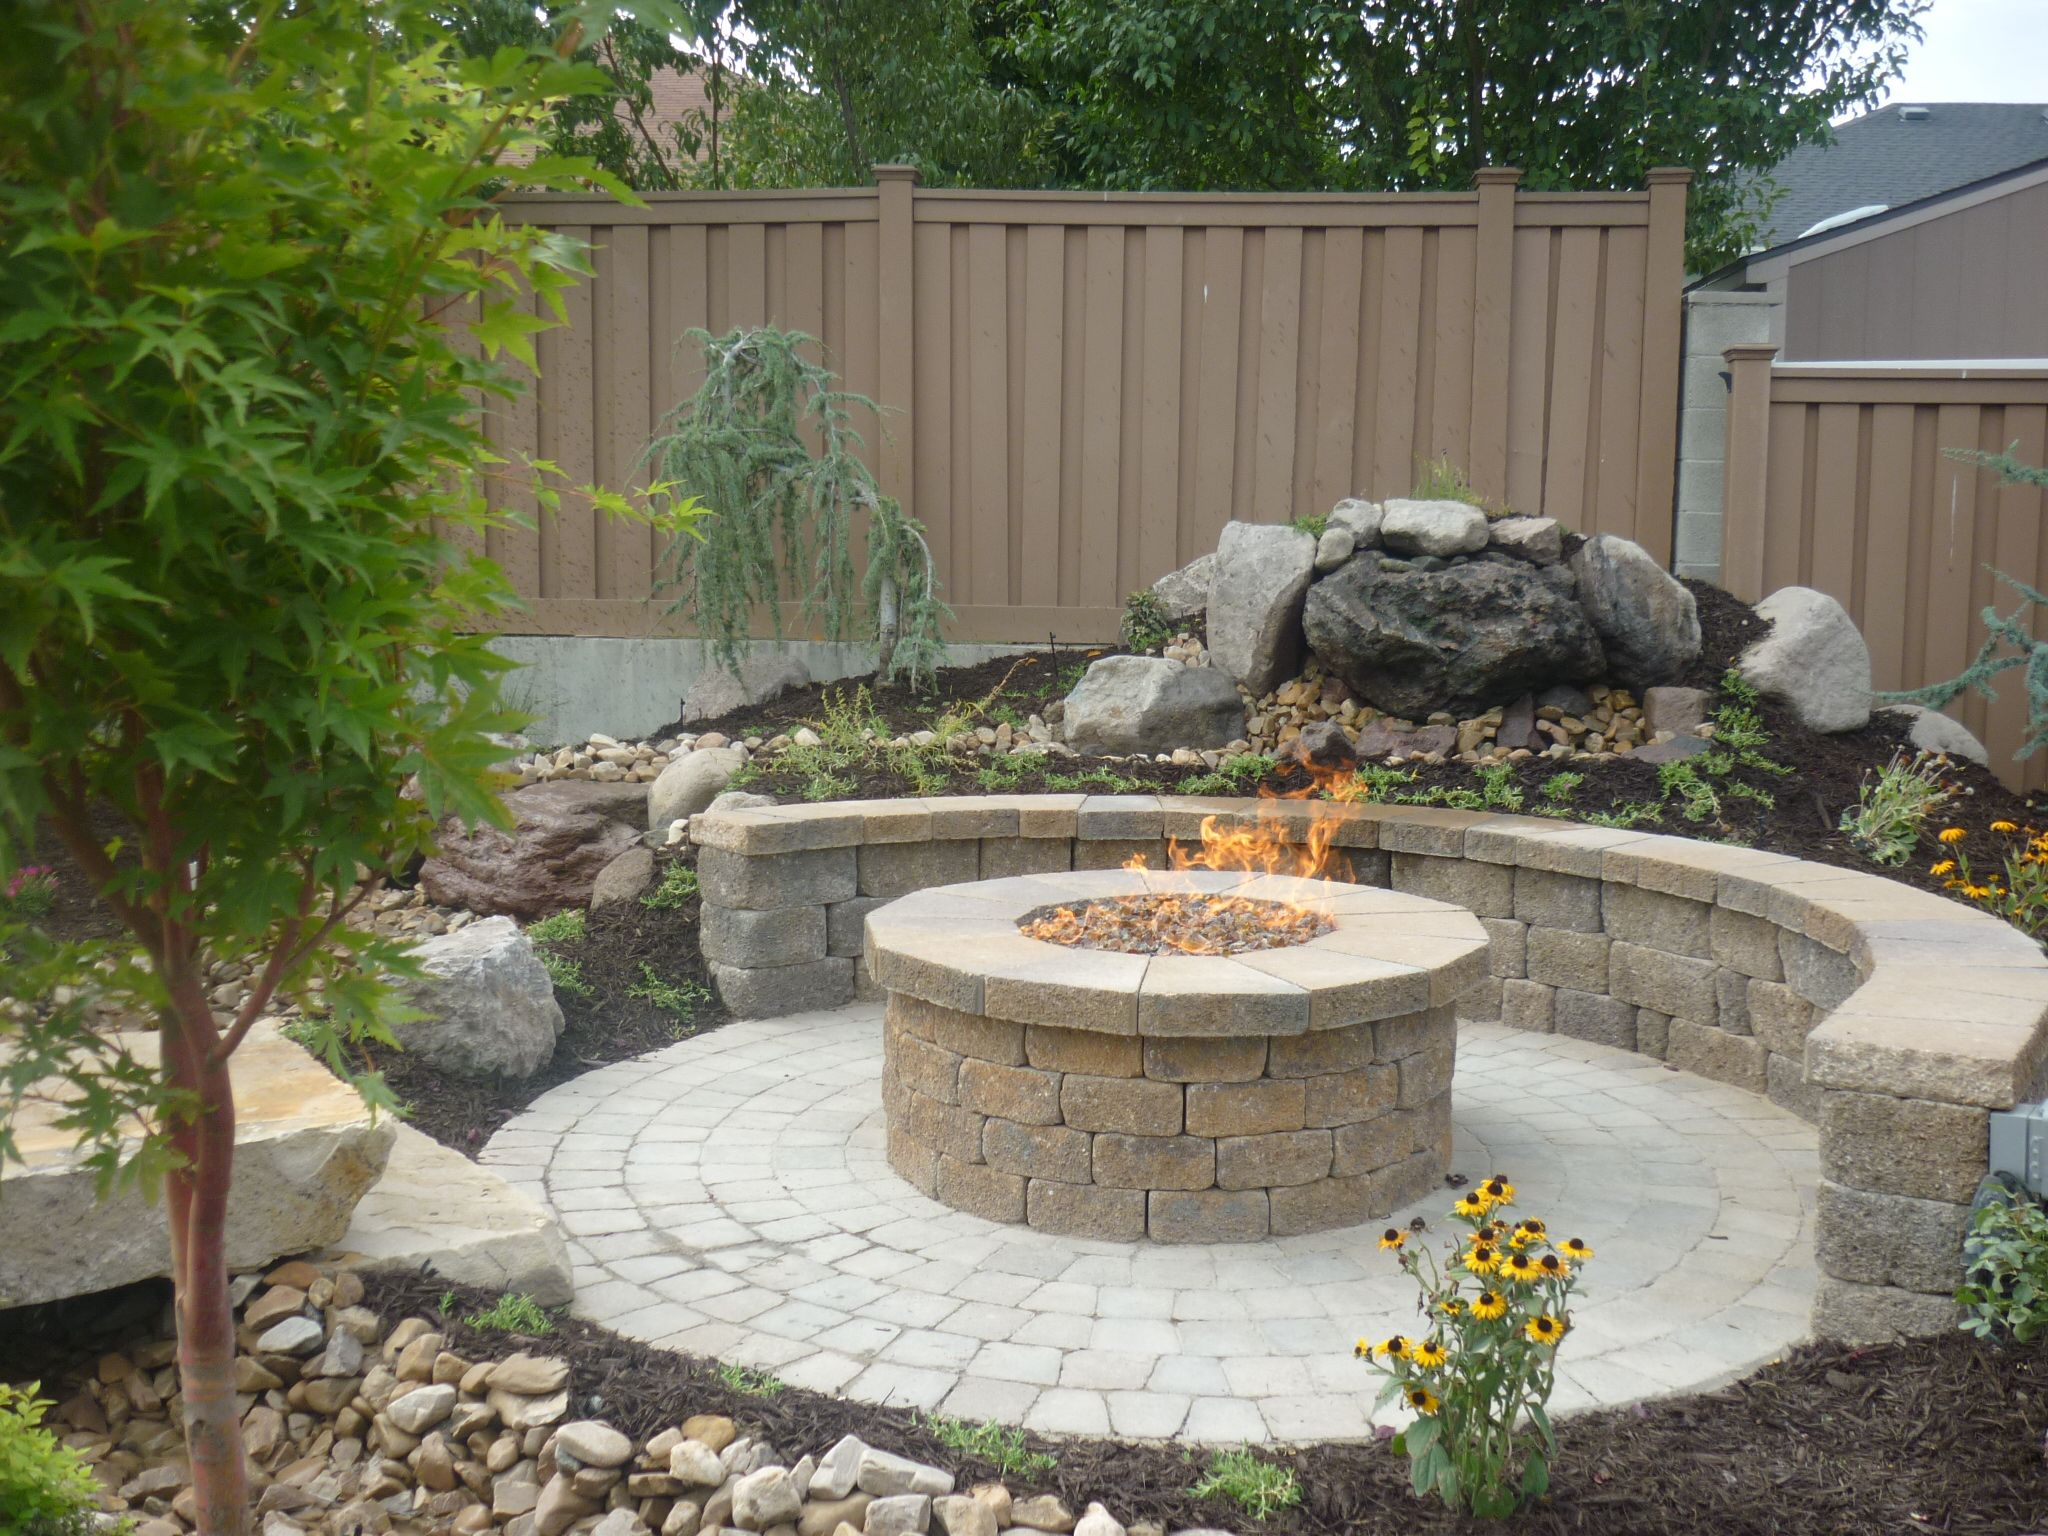 CONCRETE GRILL PAD AREA | Circular Paver Patio With Fire Pit · Diy ...